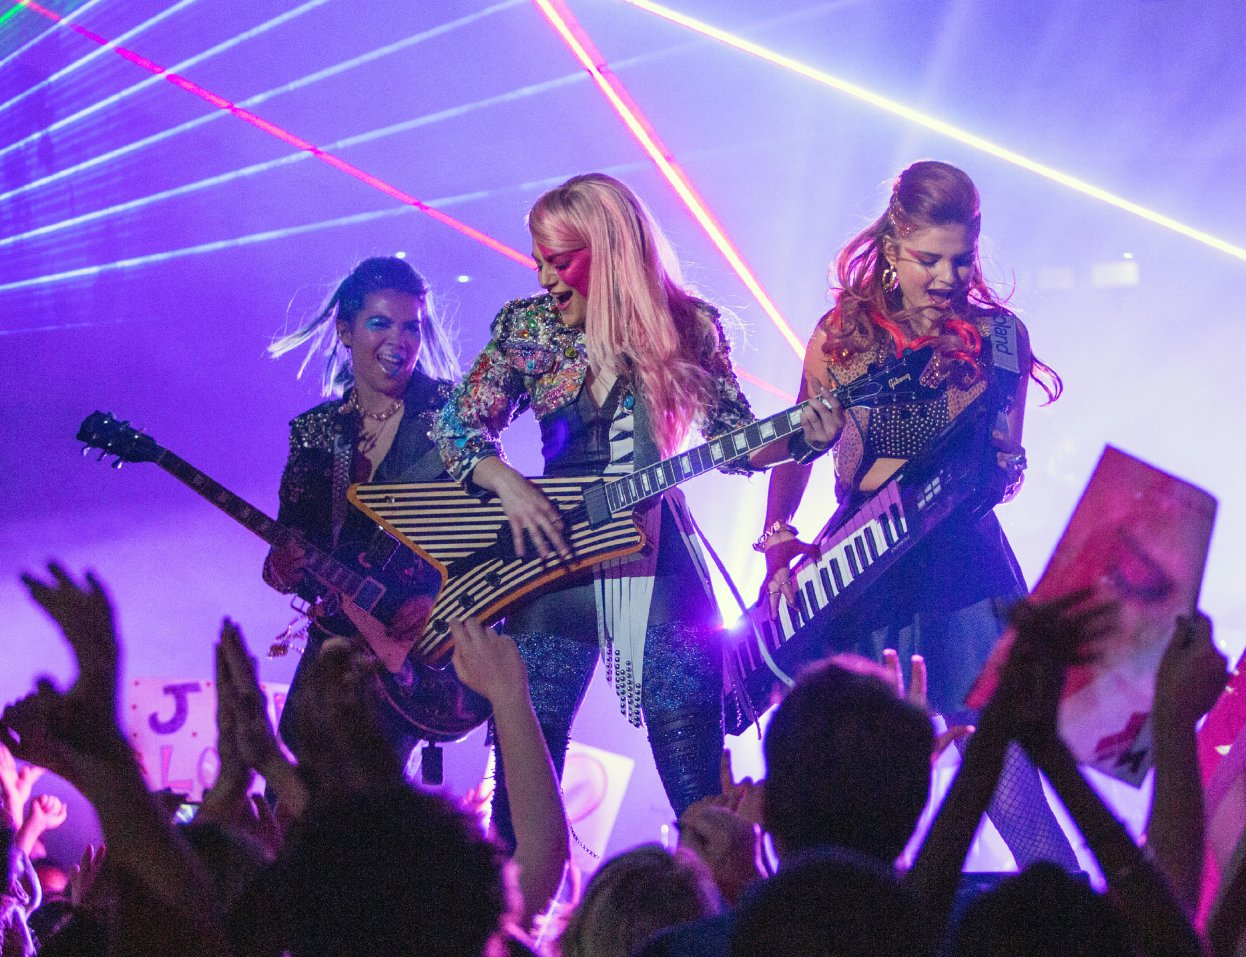 Jem movie still